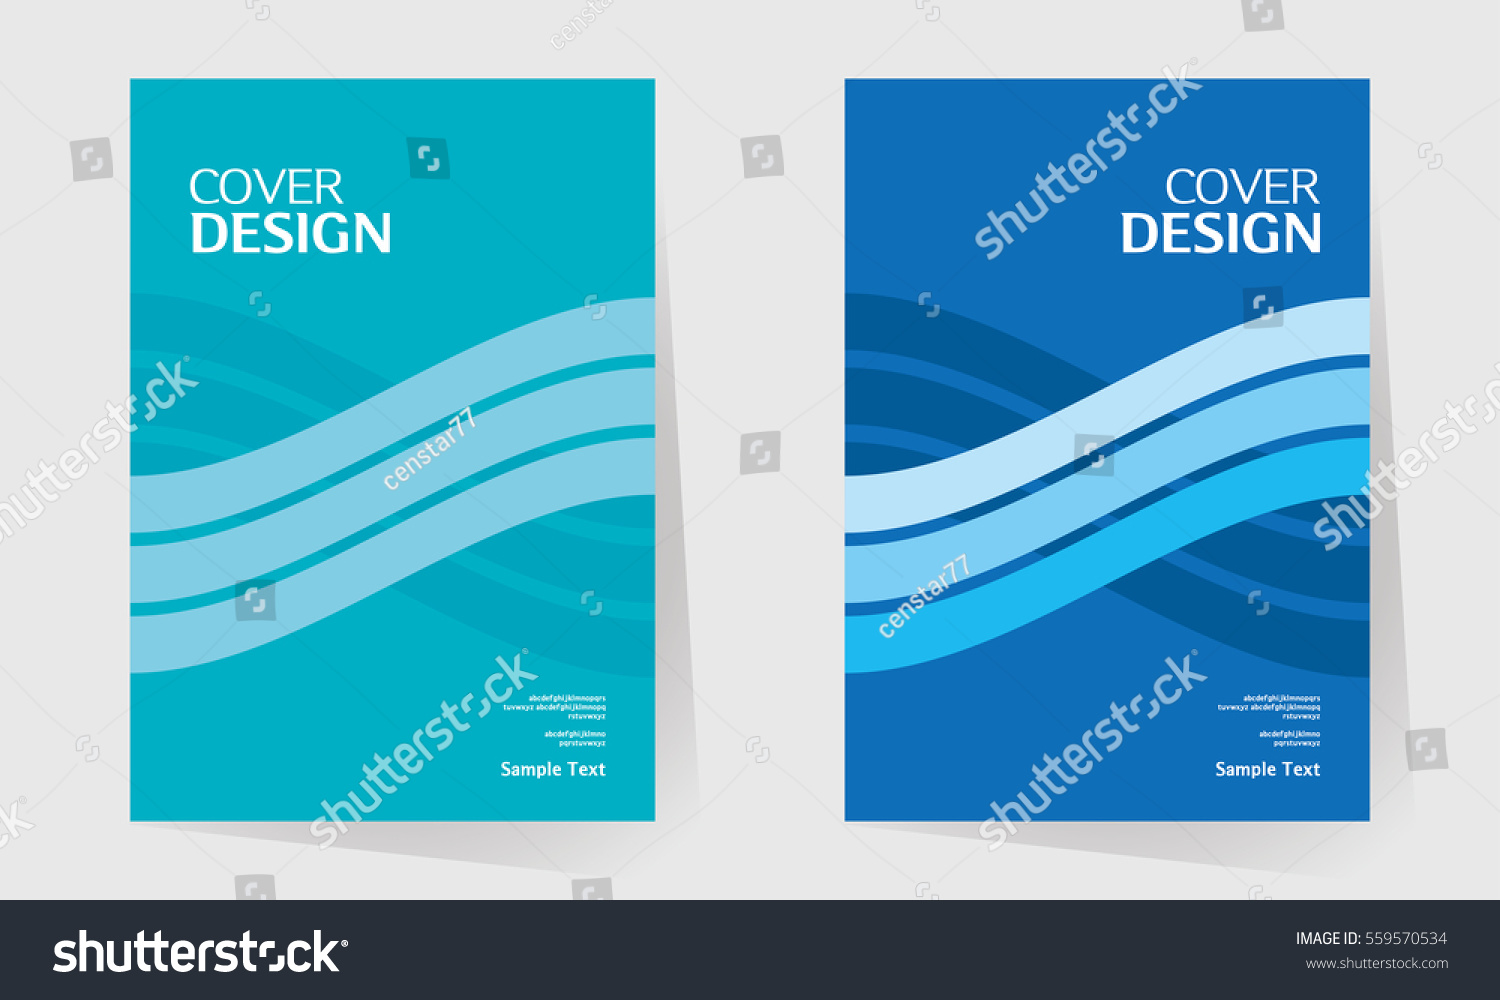 Simple Book Cover Design Template : Book cover design vector template a stock